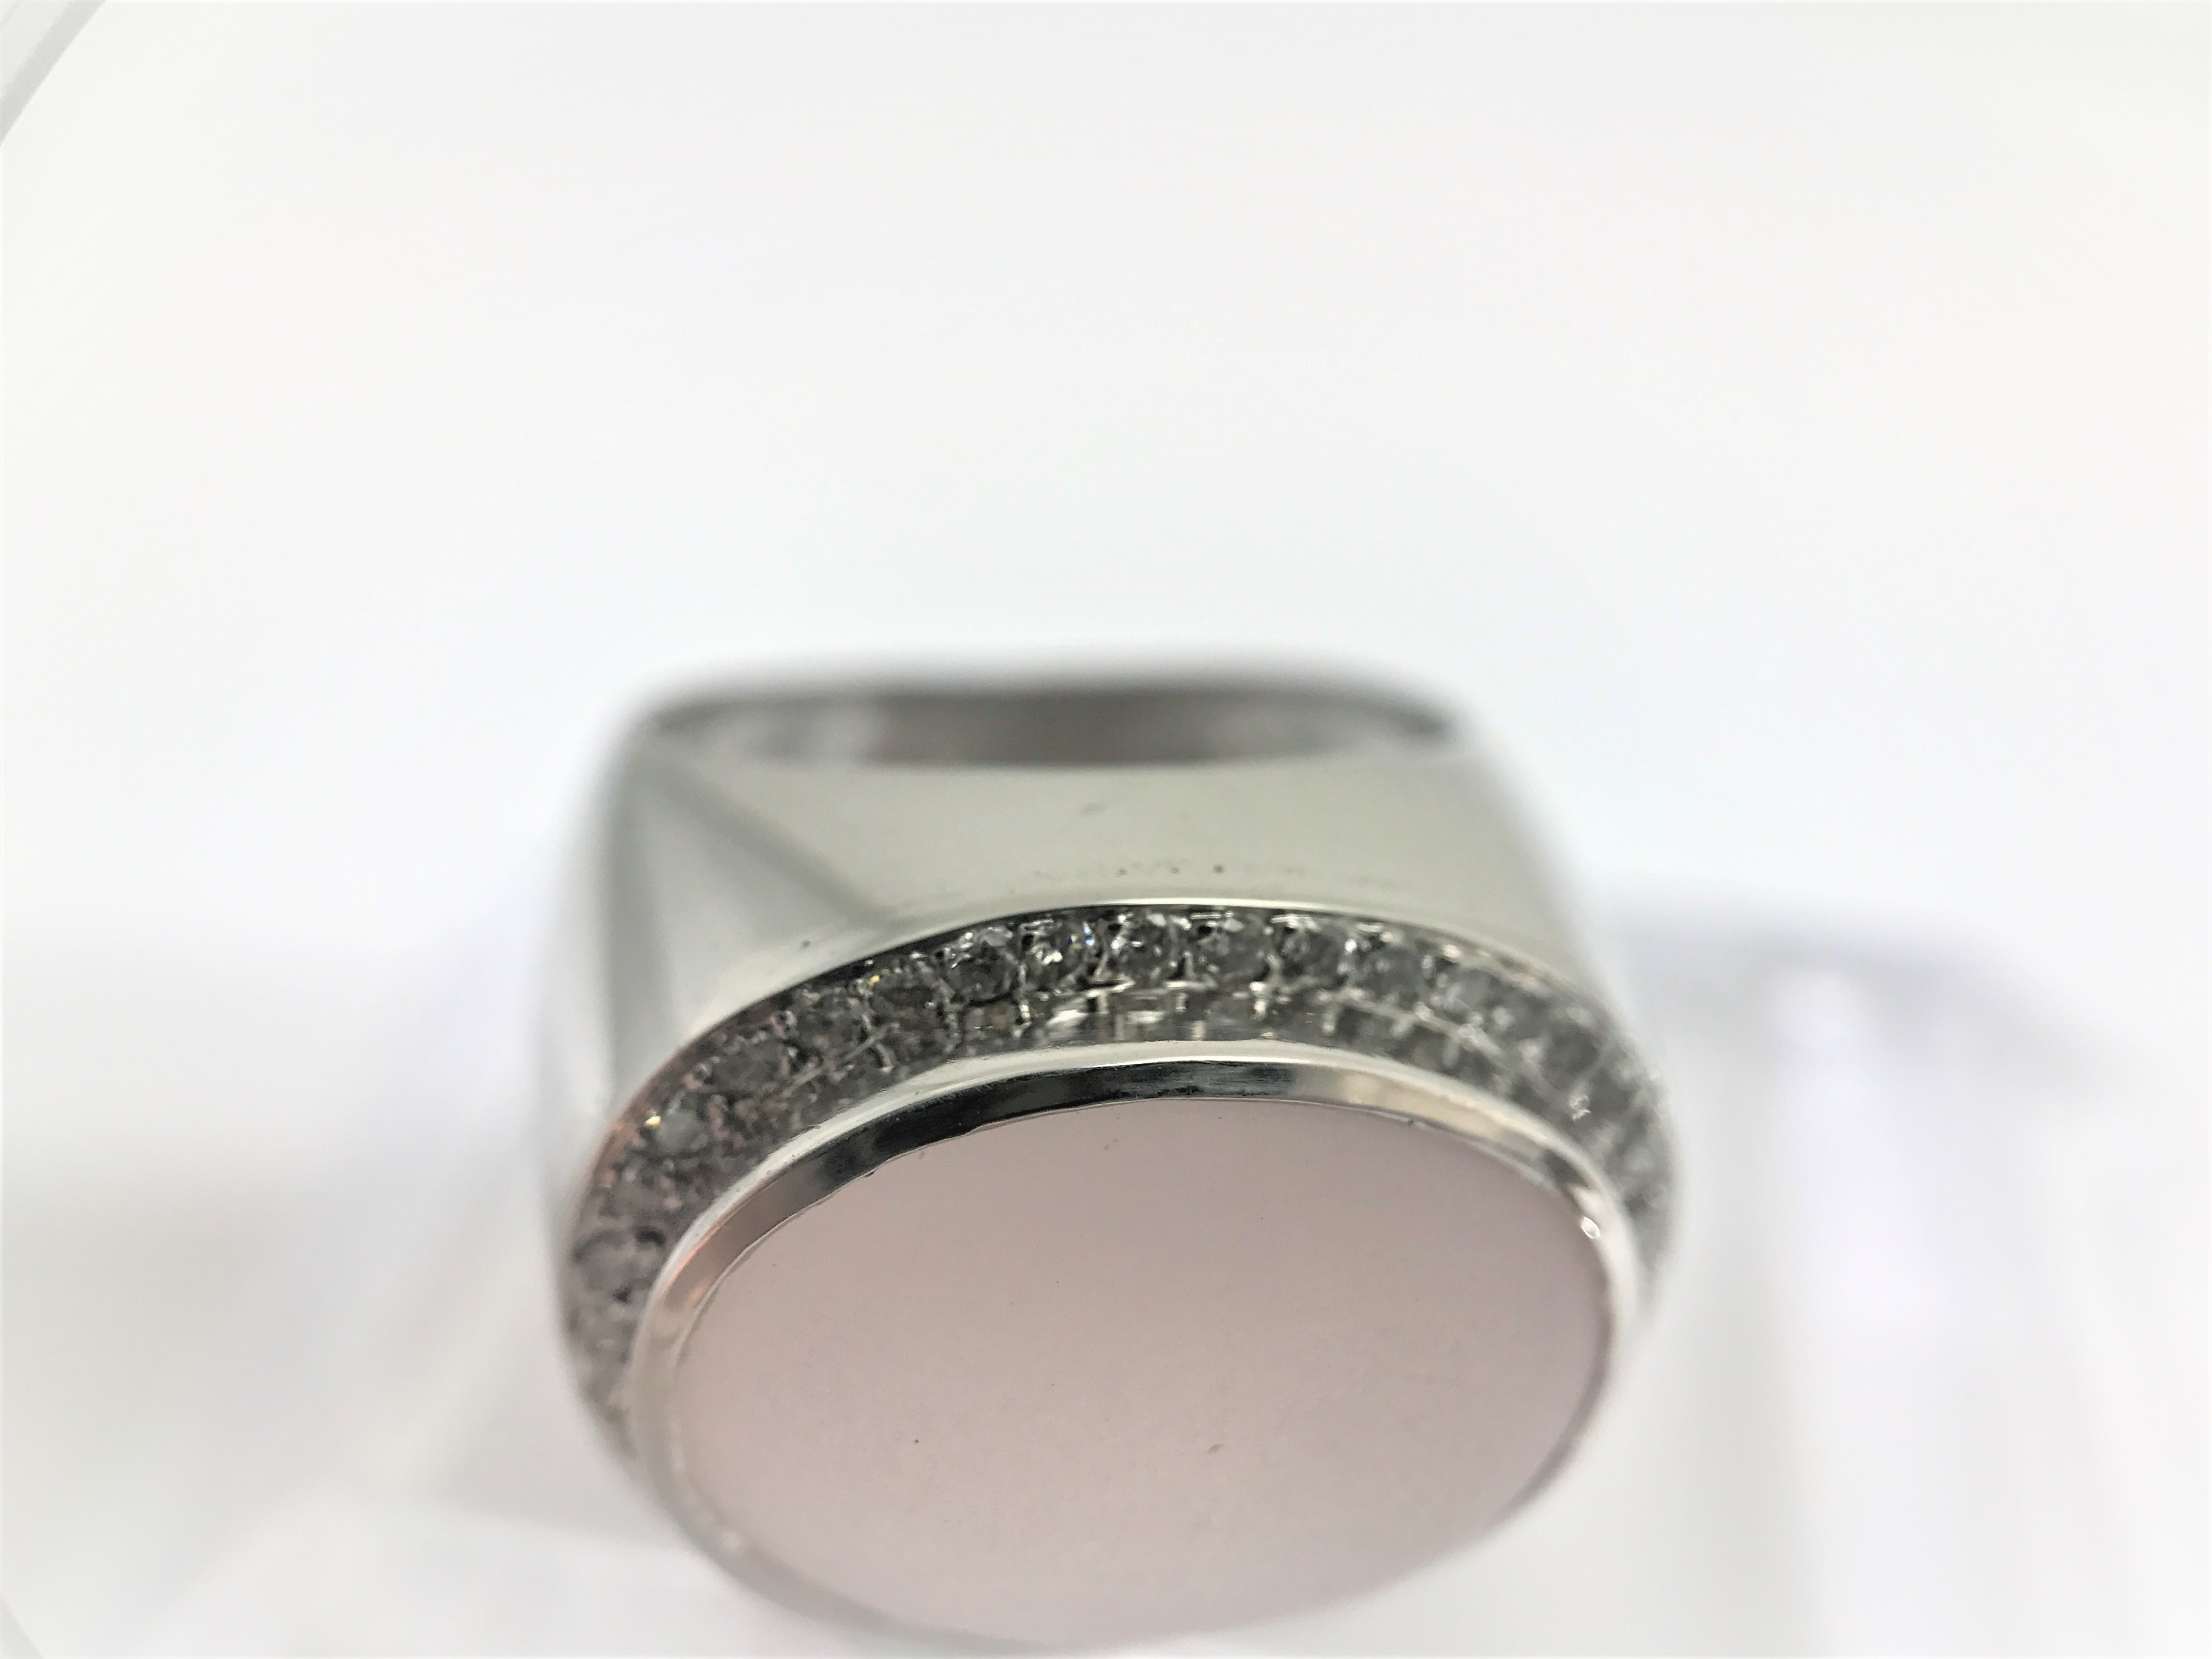 Modern coktail ring with a milky rose quartz in halo design set in 18k white gold. 40 diamonds. Size - Image 2 of 4